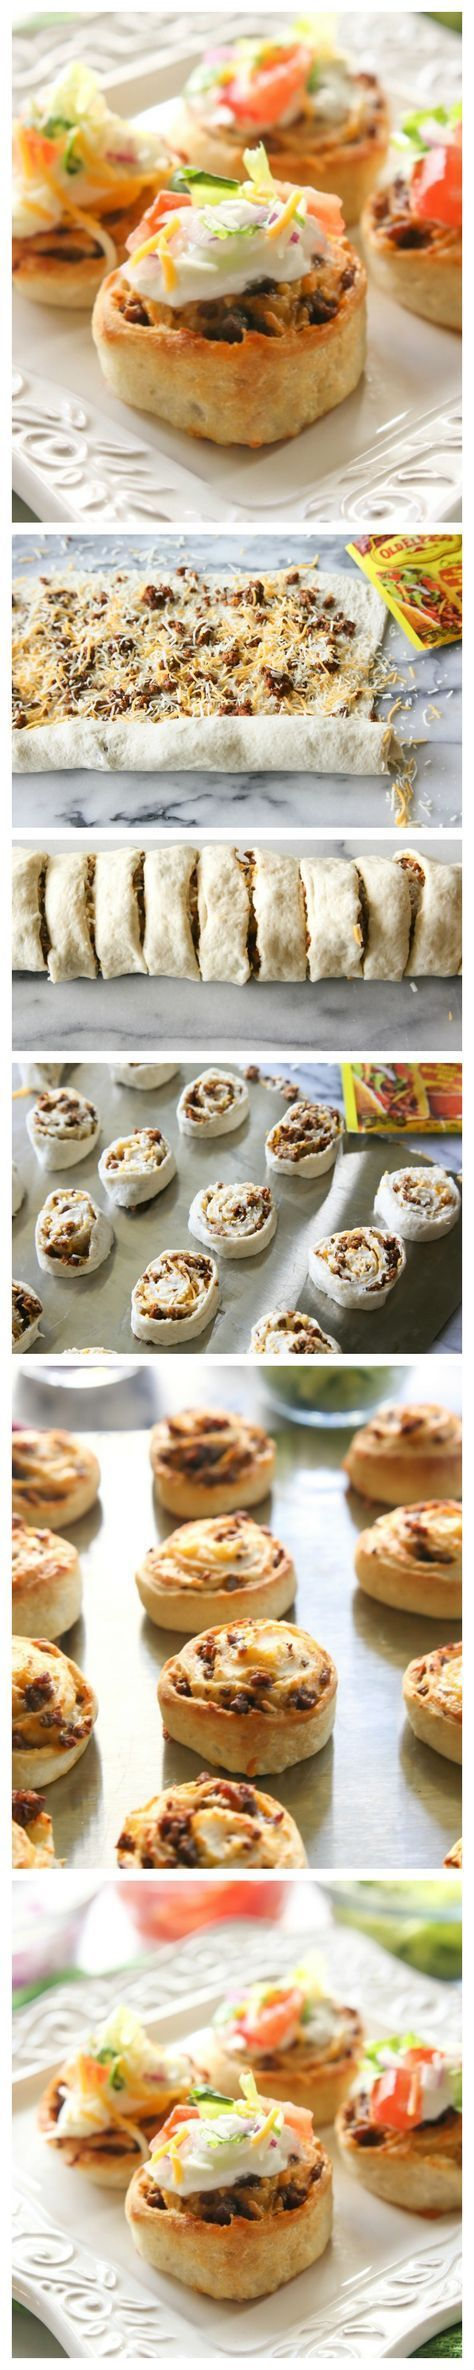 These Taco Pizza Rolls are made with taco meat and cheese rolled up in pizza…